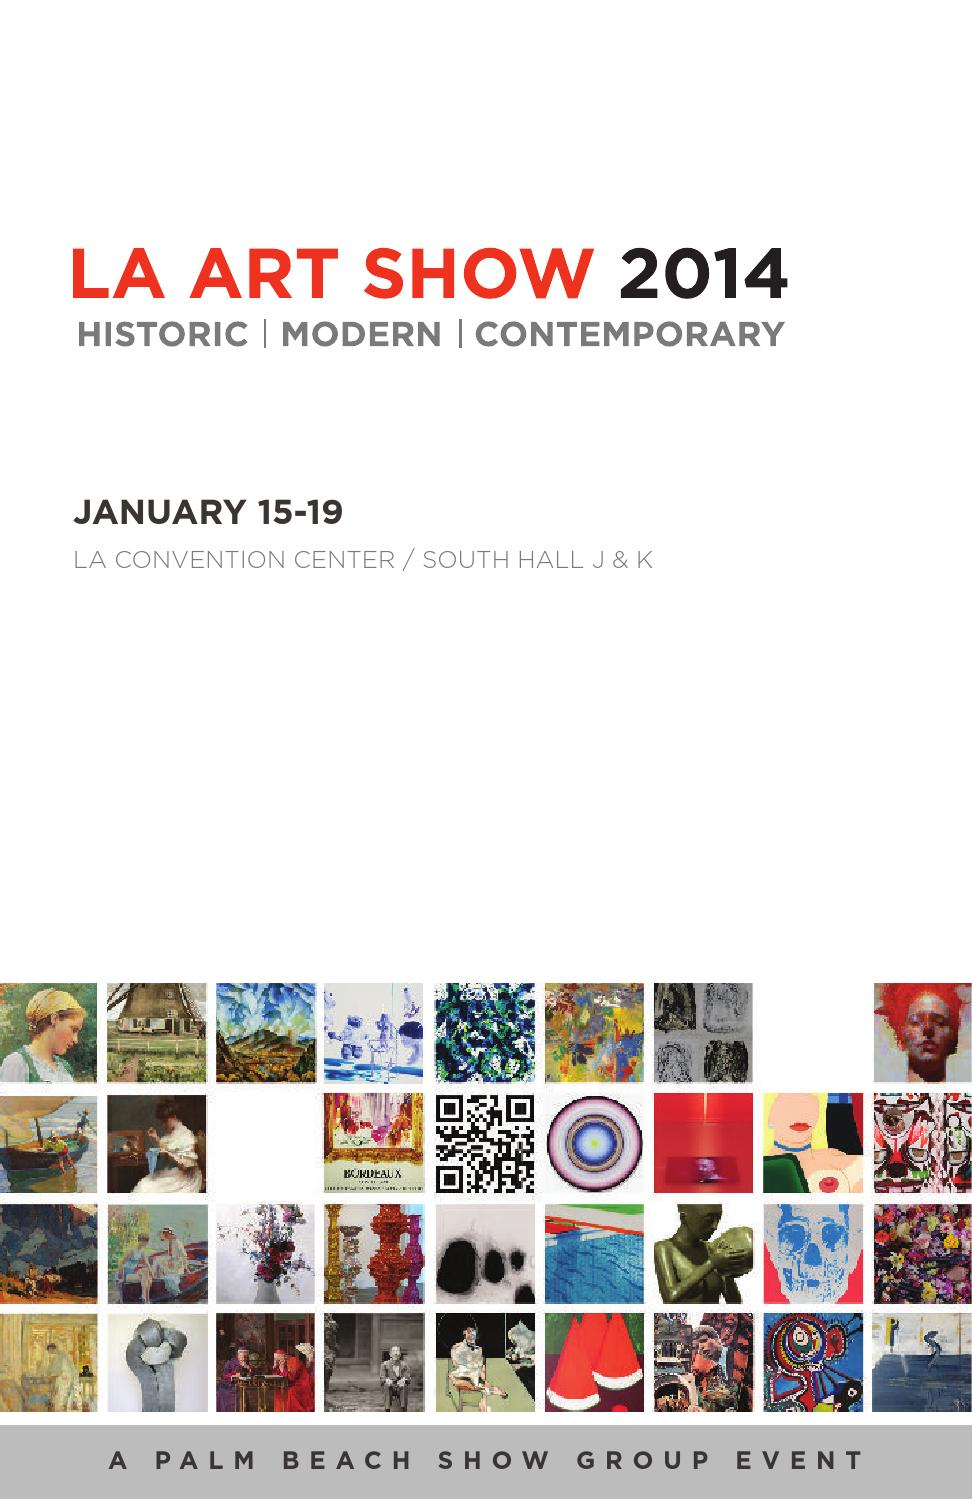 La art show catalogue 2014 by palm beach show group issuu fandeluxe Gallery